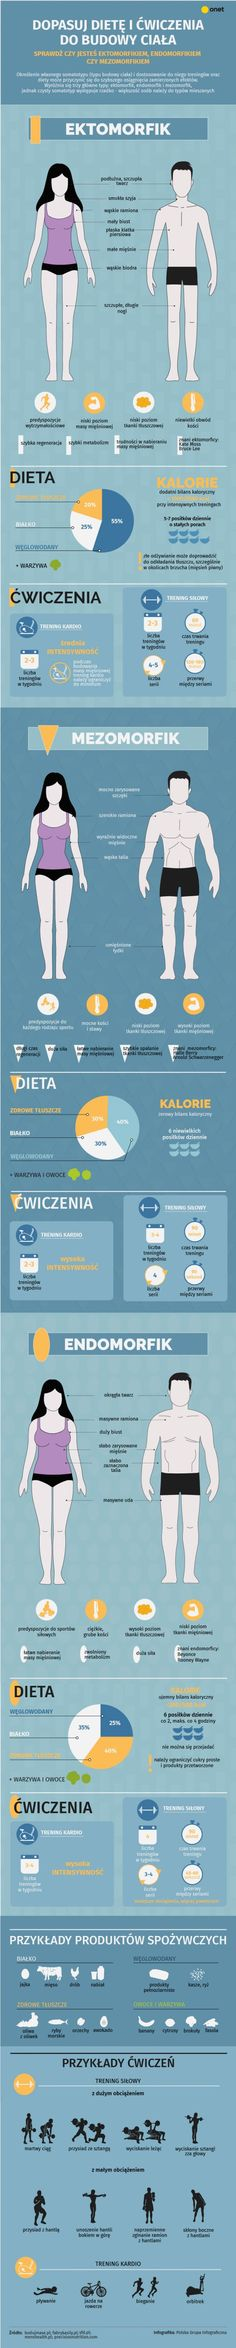 Ektomorfik, mezomorfik i endomorfik – jaki jest twój typ budowy ciała? [INFOGRAFIKA] - Bądź Fit! Bądź Fit, Stay Fit, Gym Plans, Healthy Diet Recipes, Fitness Transformation, Health Motivation, Perfect Body, Health Remedies, Excercise